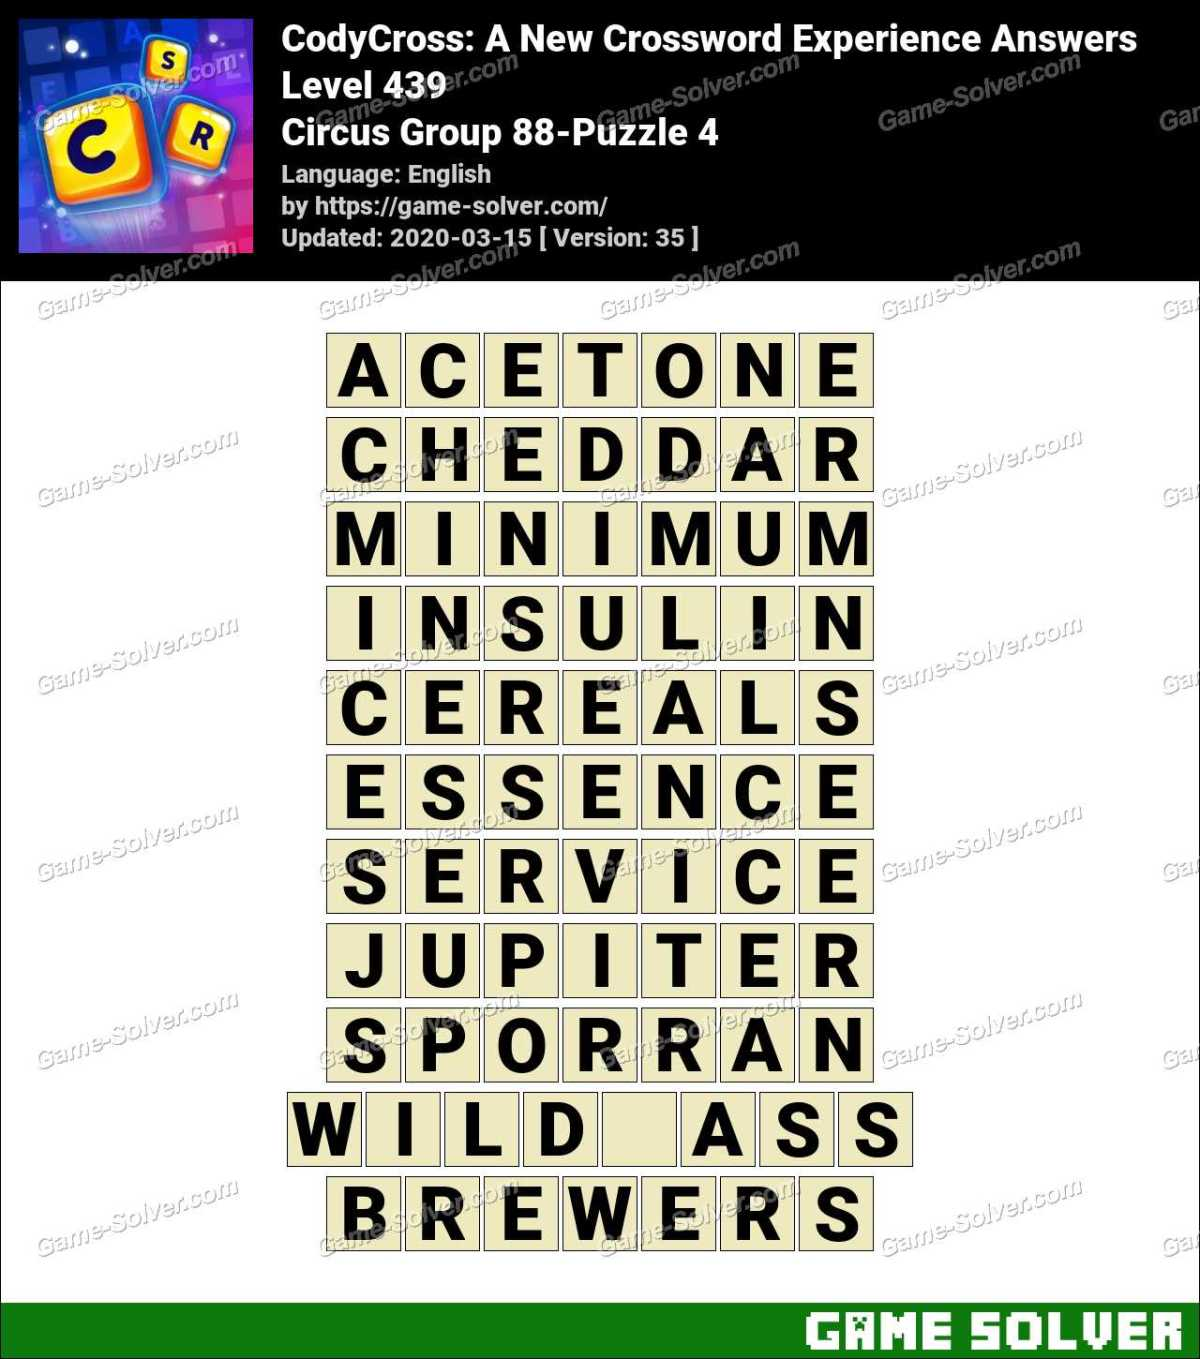 CodyCross Circus Group 88-Puzzle 4 Answers